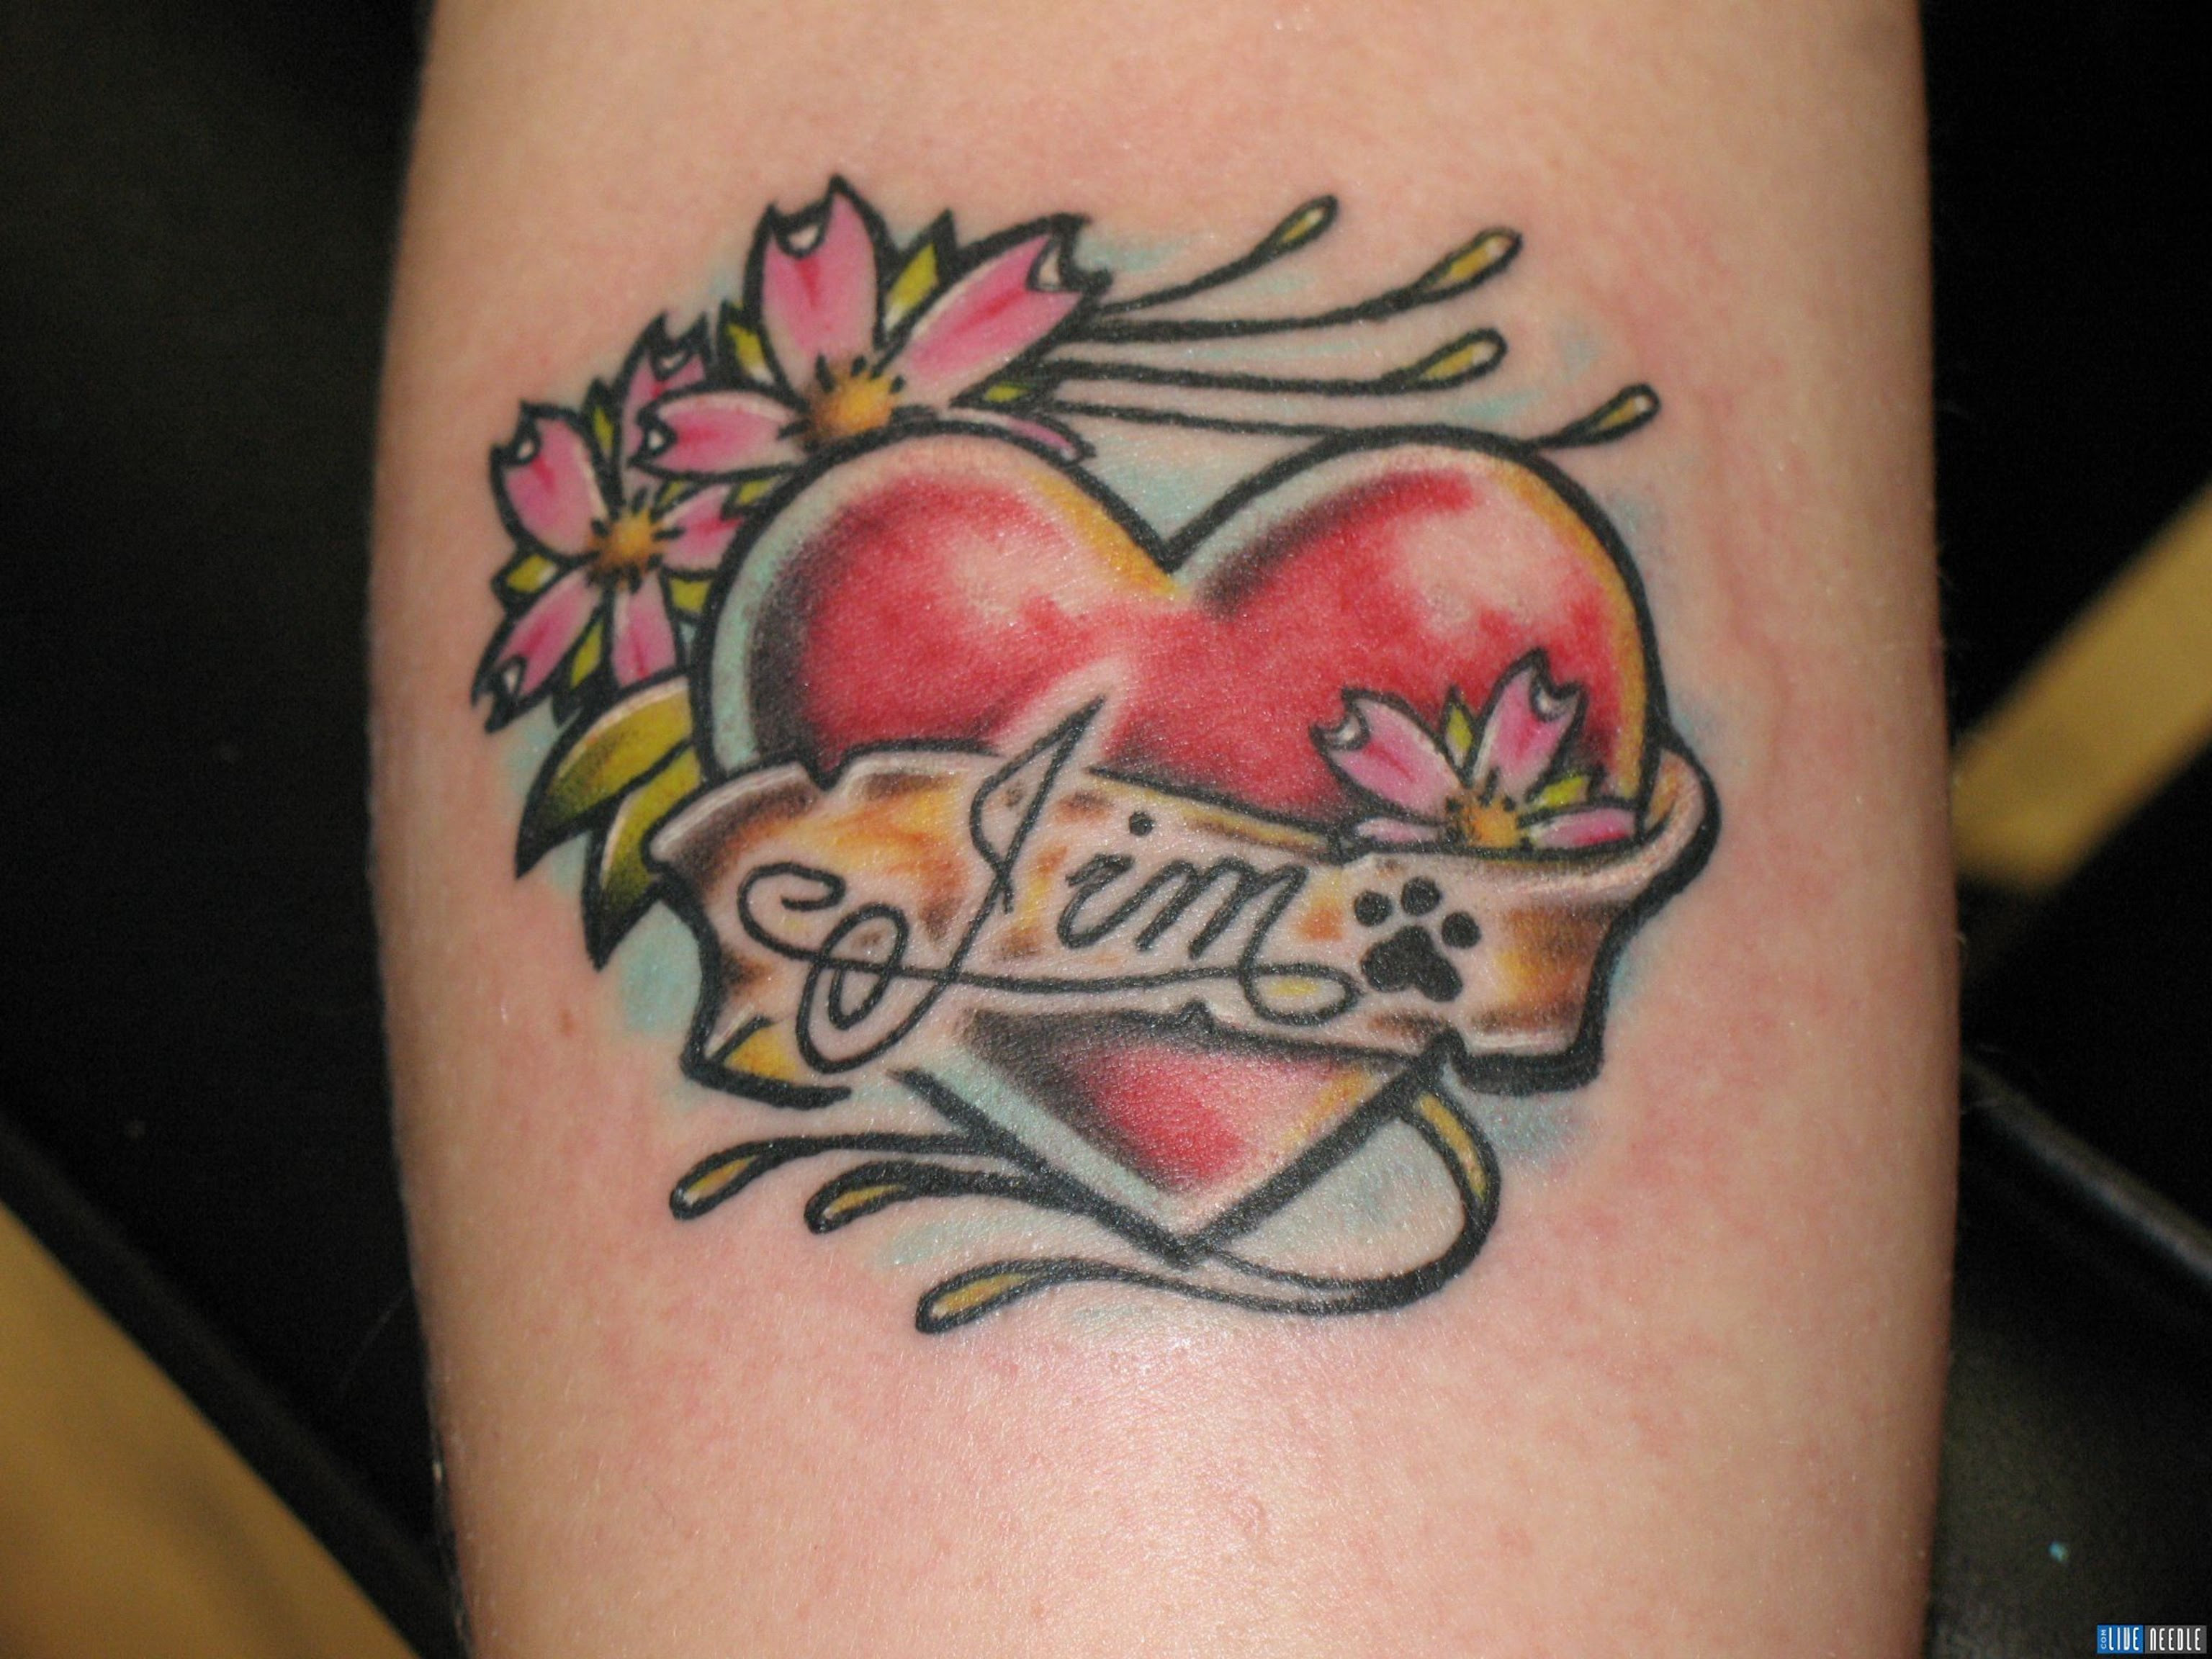 Crazy Tattoo Ink Heart Tattoos With Kids Names Name Tattoos